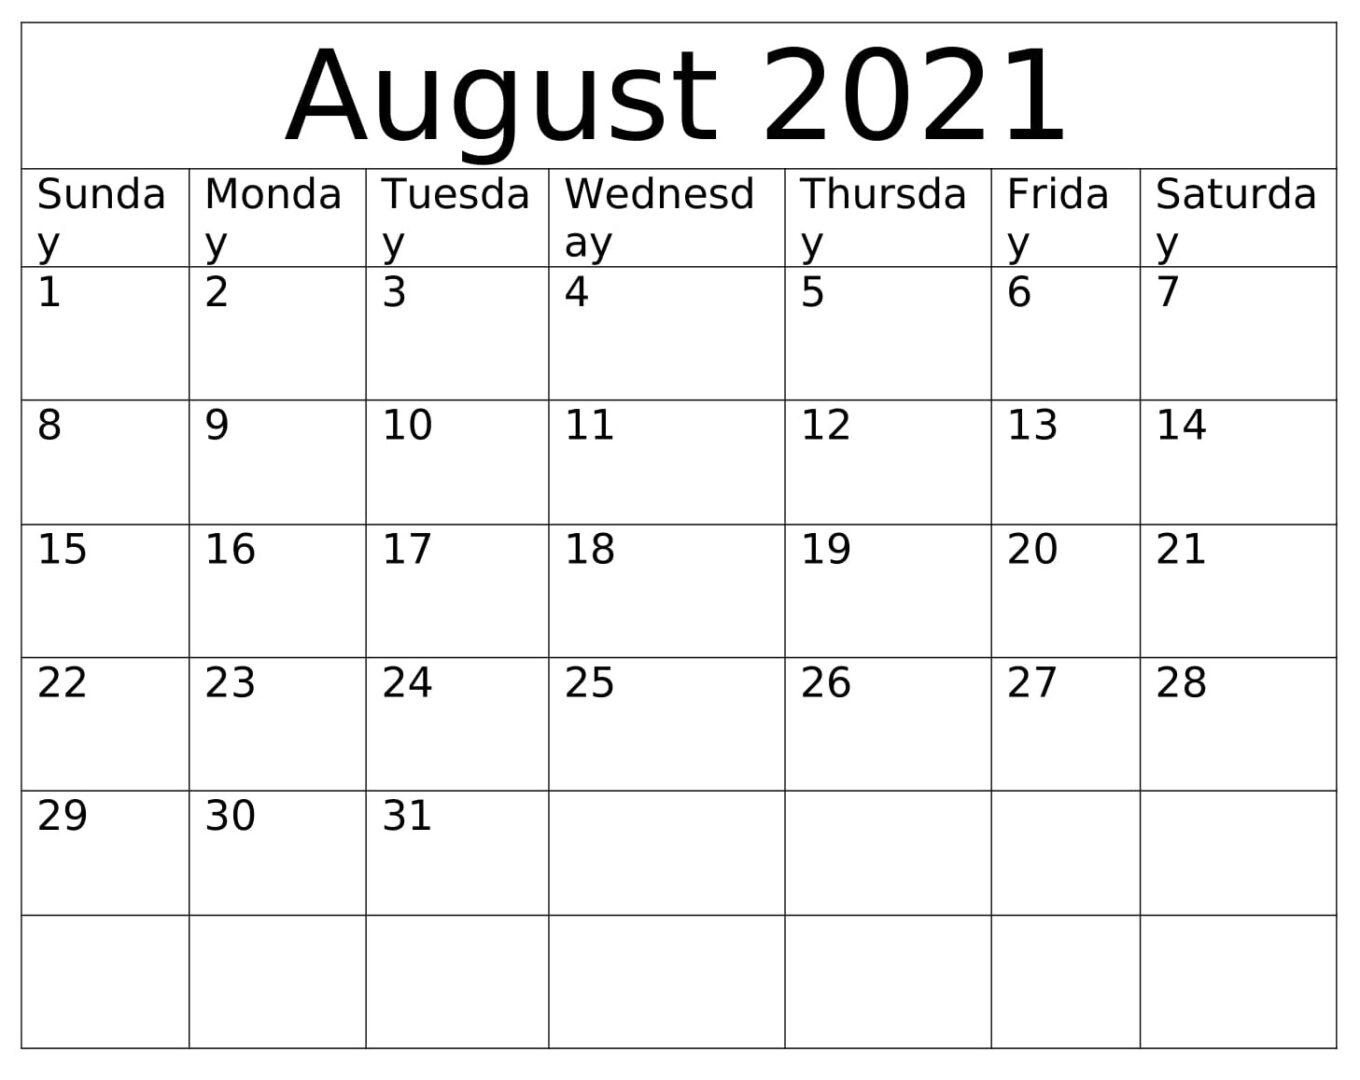 August 2021 Calendar With Holidays PDF